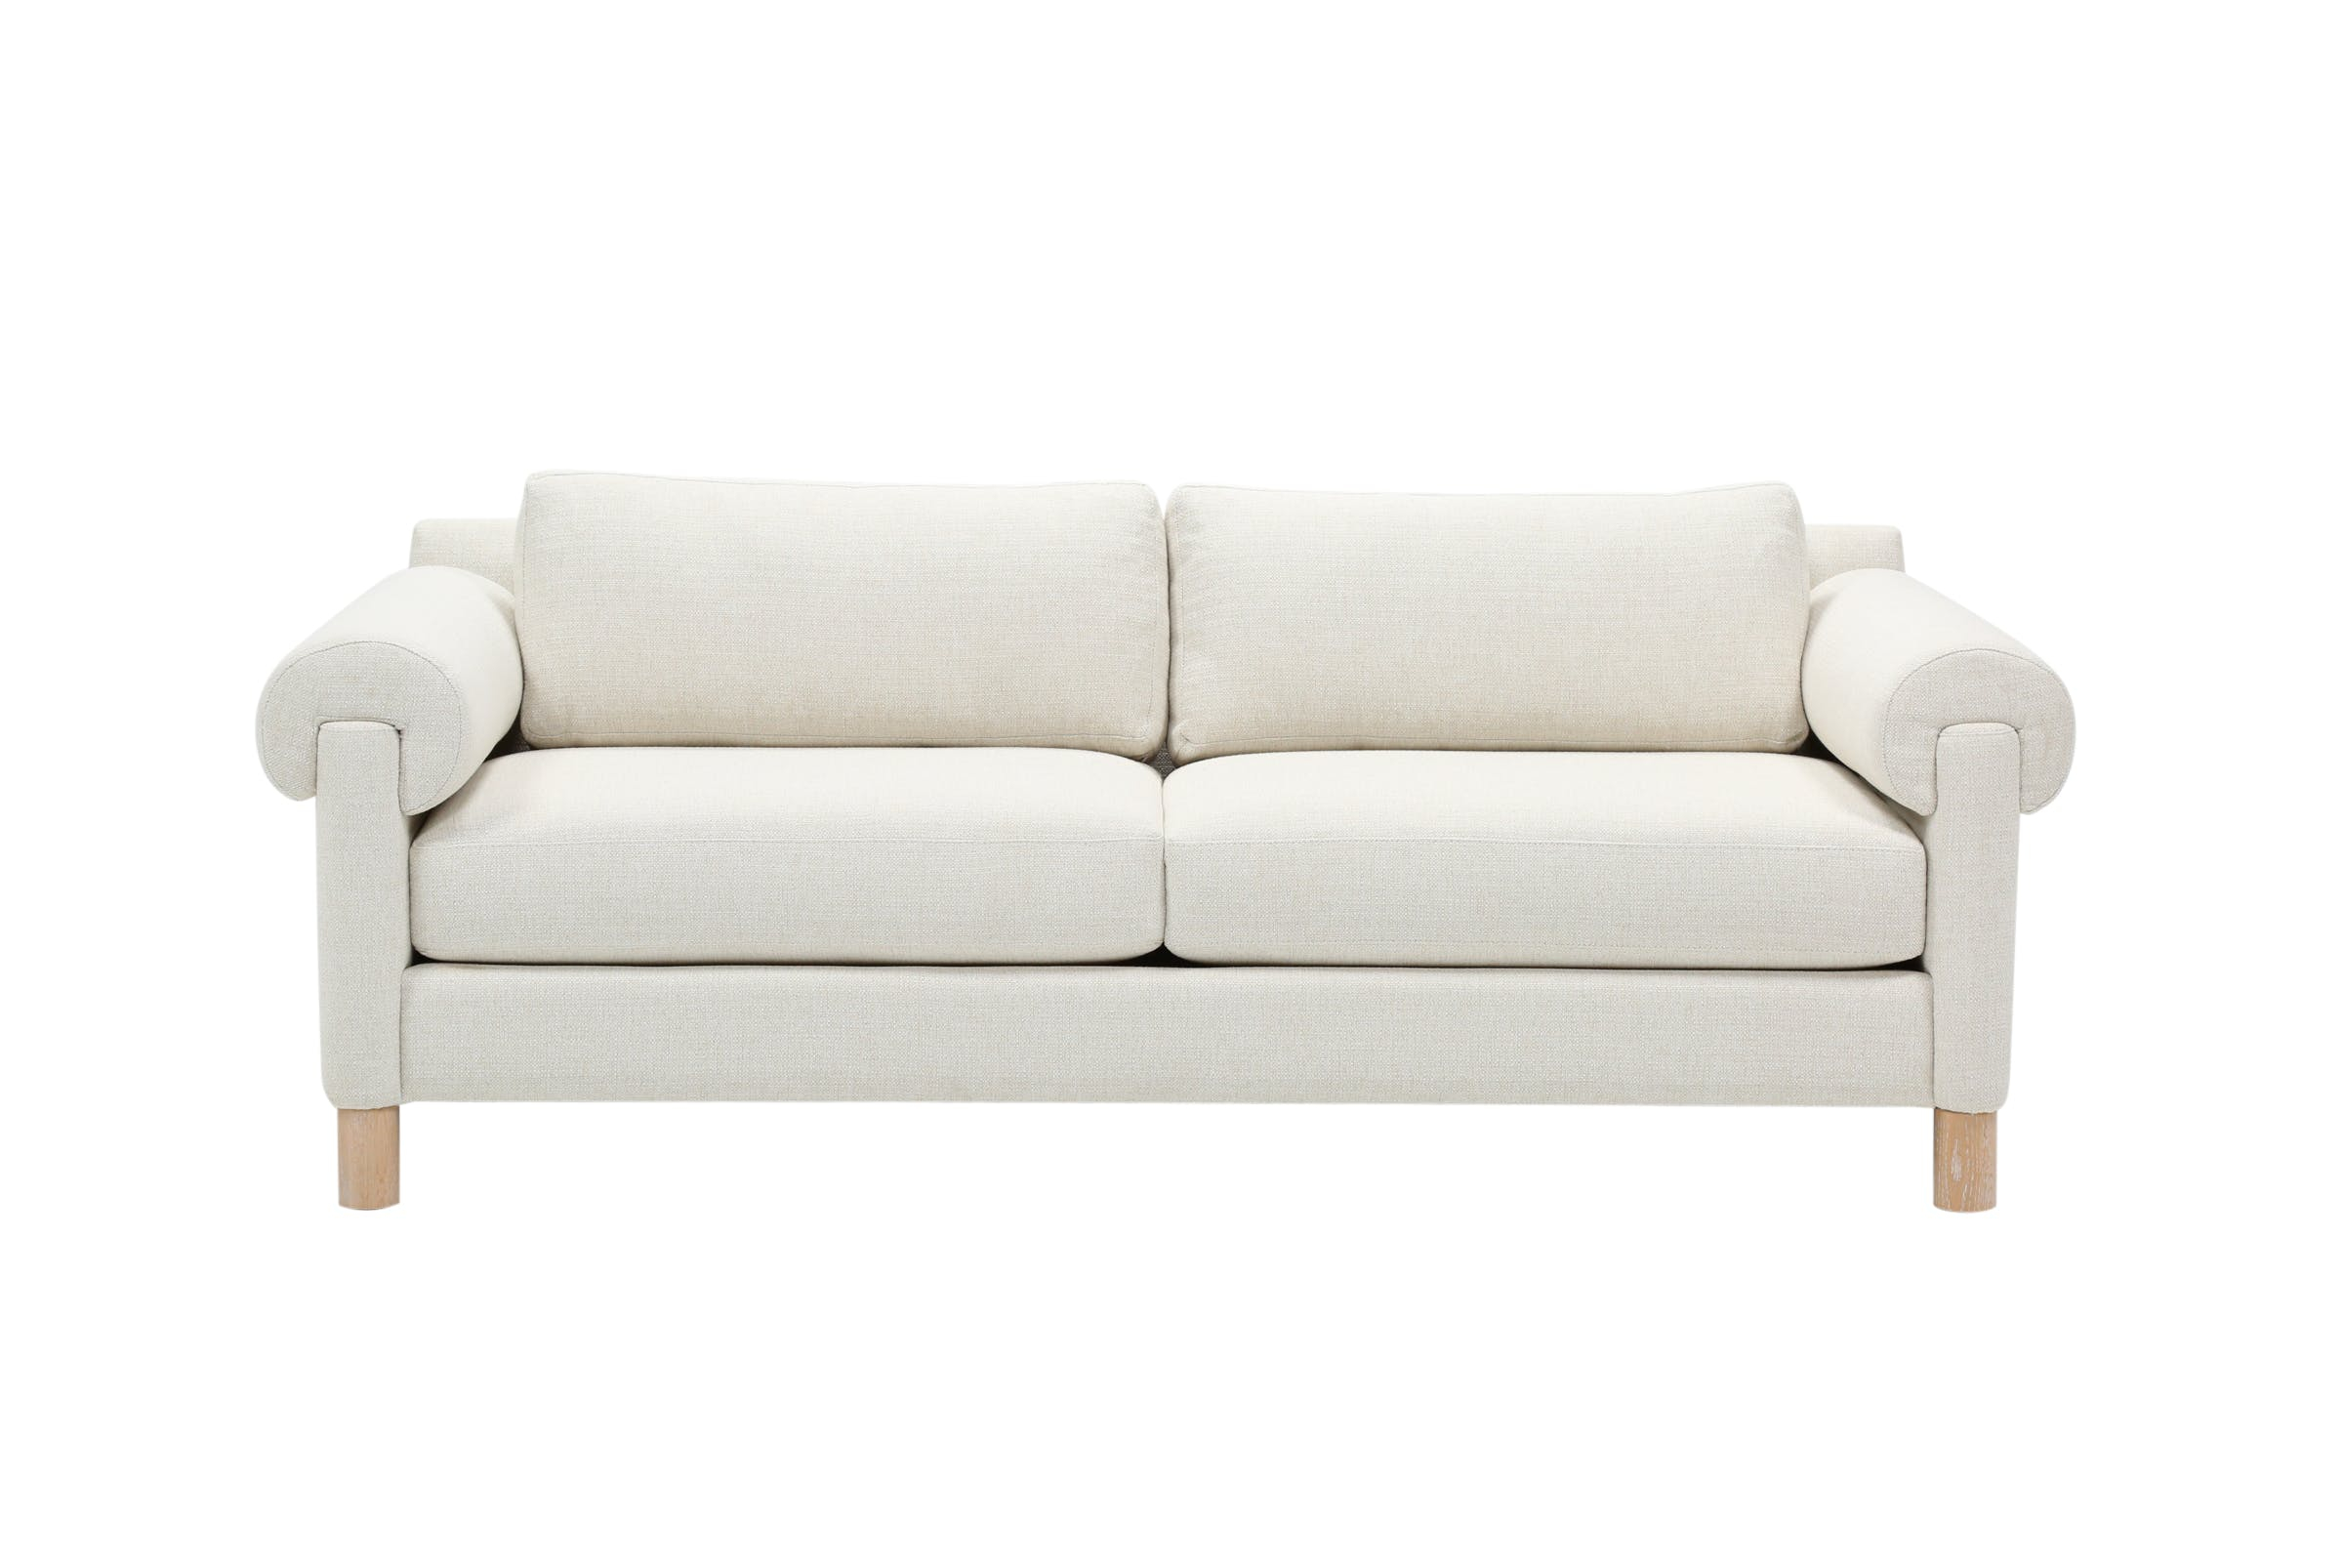 Nate Berkus Just Launched A Home Collection With Hubby Jeremiah For Matteo Arm Sofa Chairs By Nate Berkus And Jeremiah Brent (Image 11 of 25)